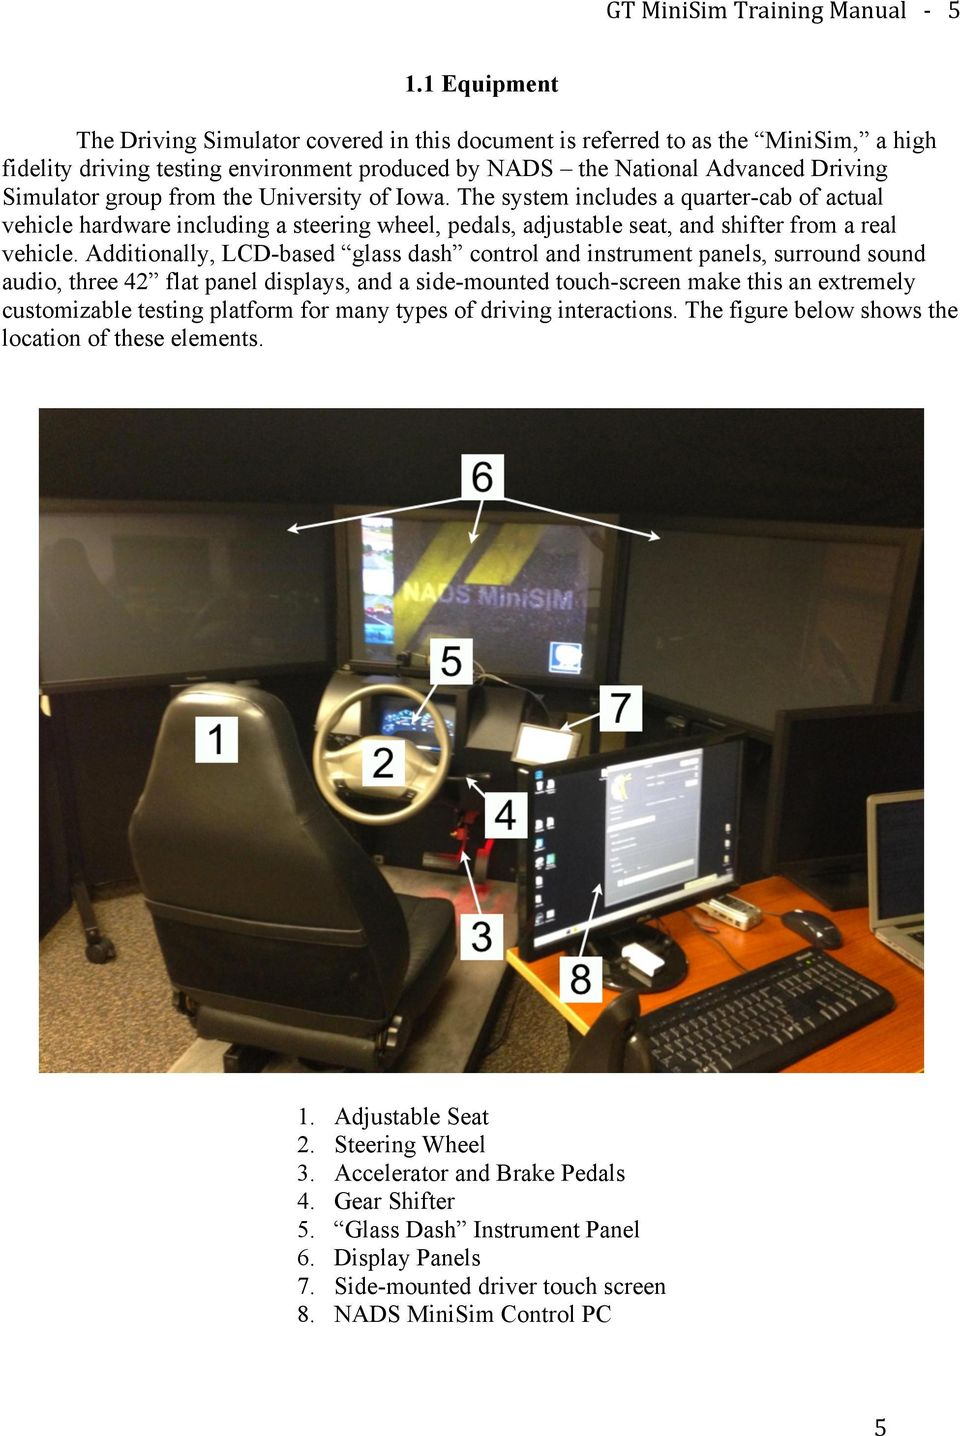 from the University of Iowa. The system includes a quarter-cab of actual vehicle hardware including a steering wheel, pedals, adjustable seat, and shifter from a real vehicle.